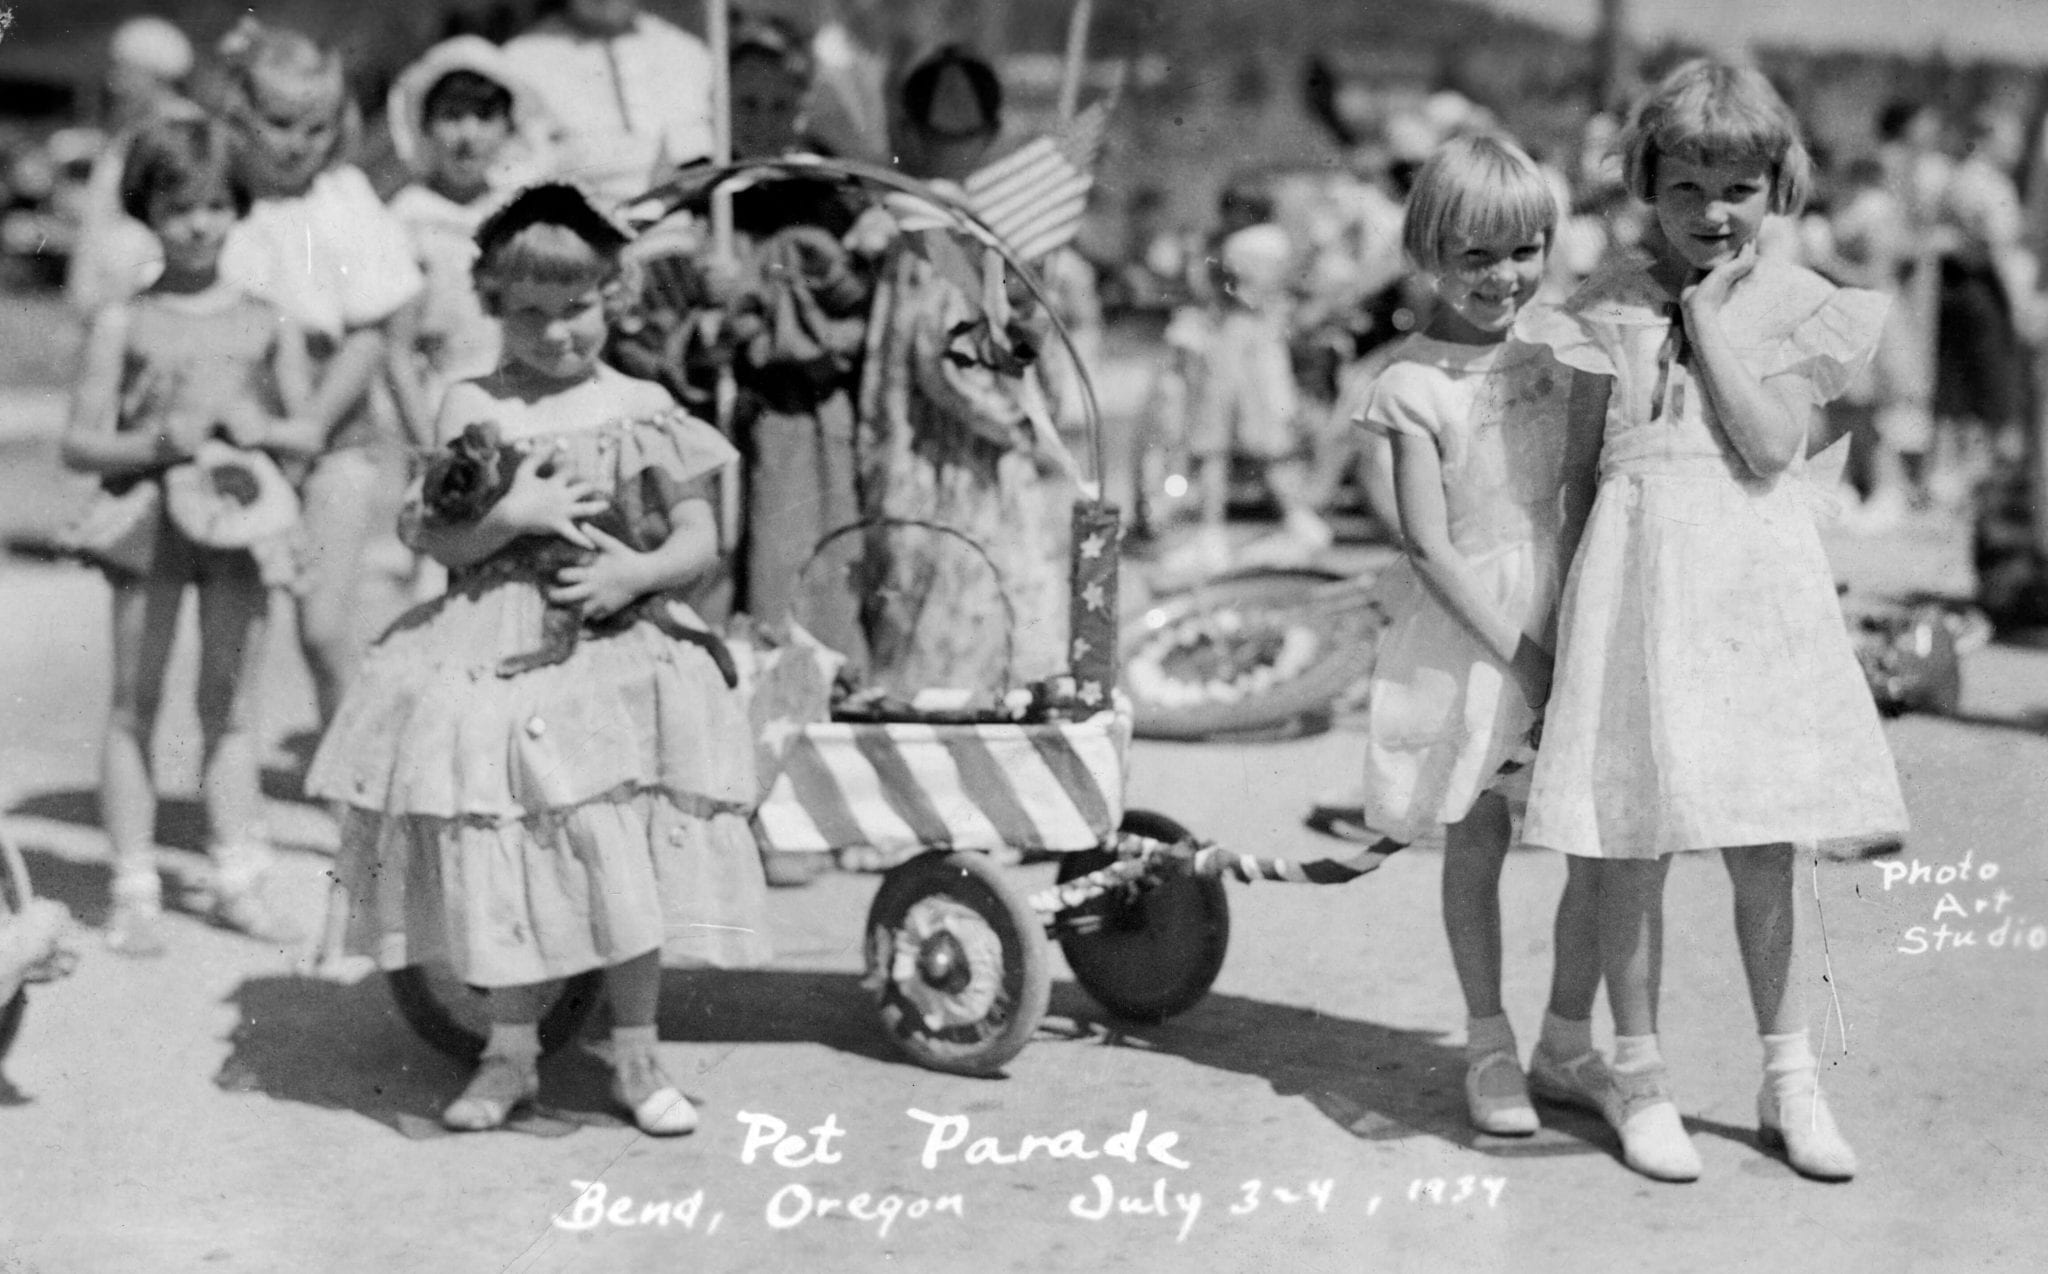 Genevieve Armstrong (with cat) and sister Joyce in the 1934 pet parade. Friend Elma Ramlo accompanies, pulling the wagon.